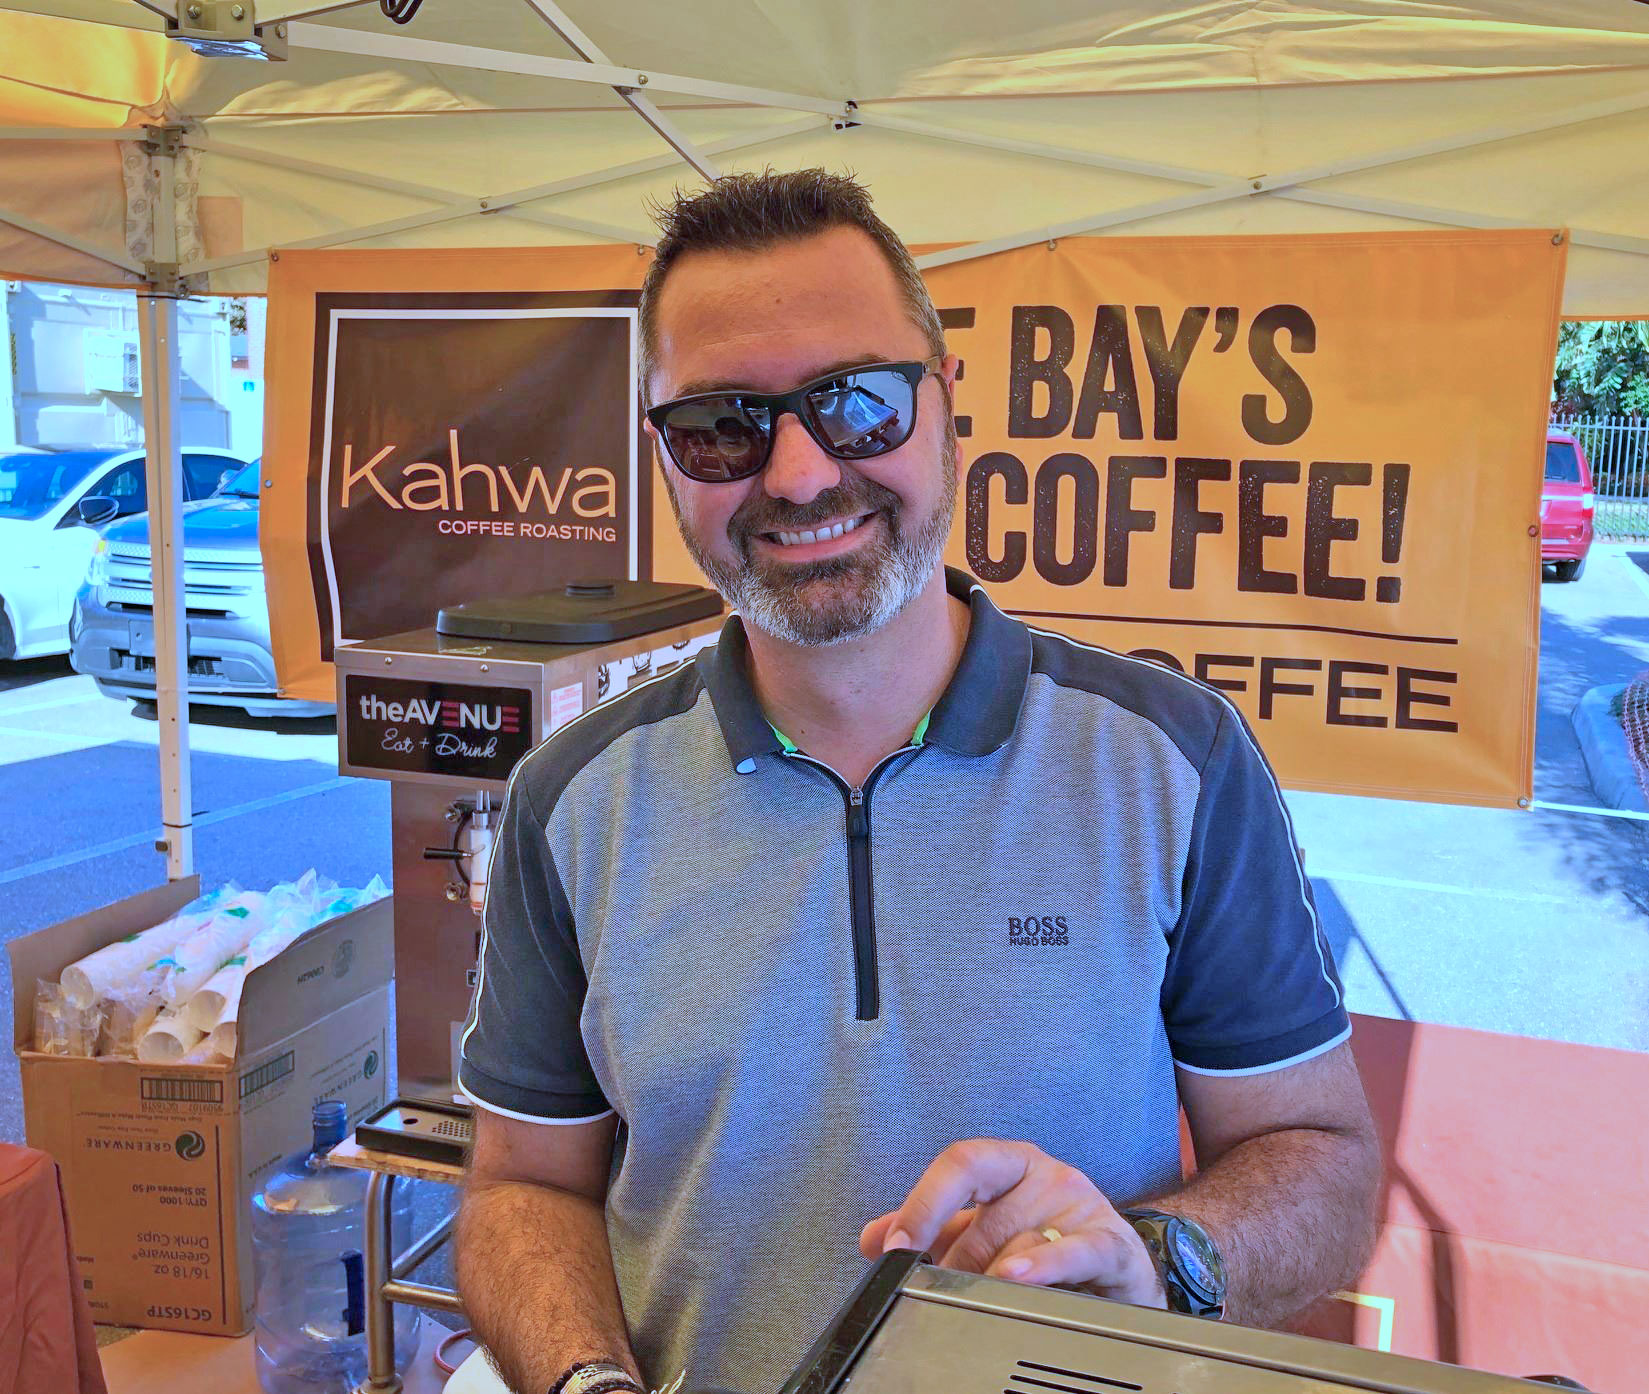 Raphael Perrier of Kahwa Coffee Roasting